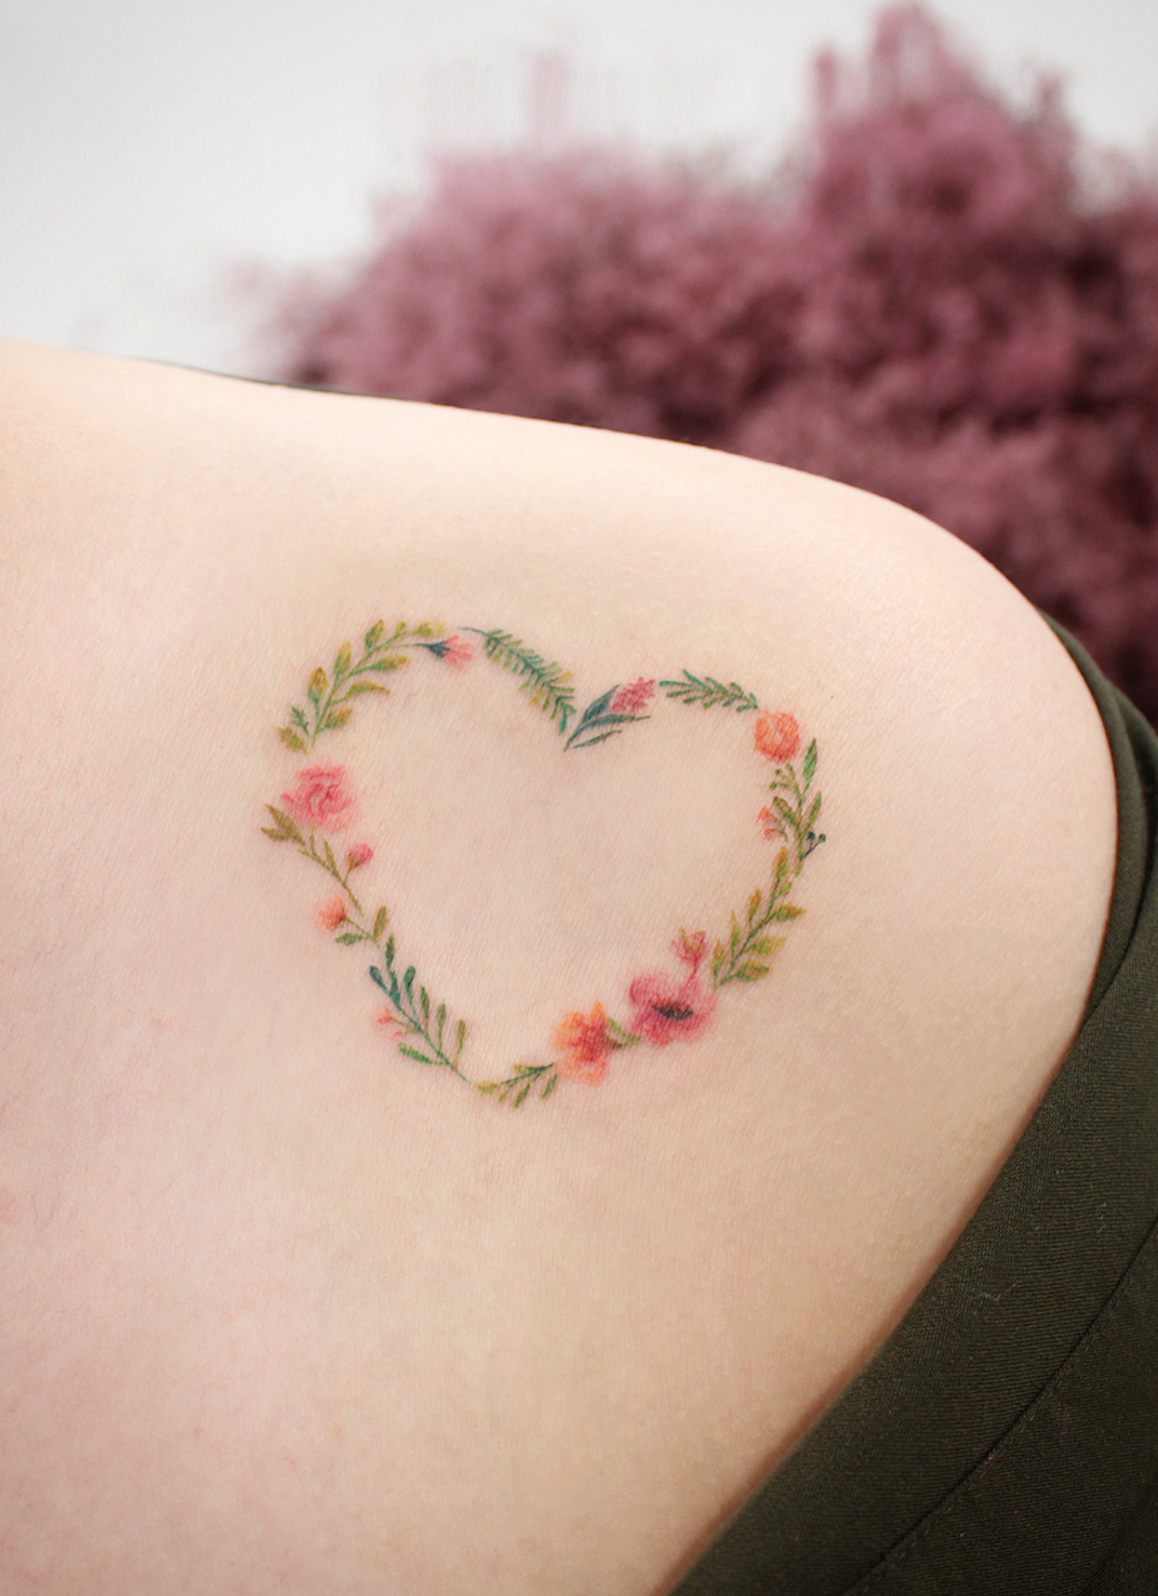 Cute Flower Tattoo Designs: Minimalist Flower Tattoos According To Your Personality